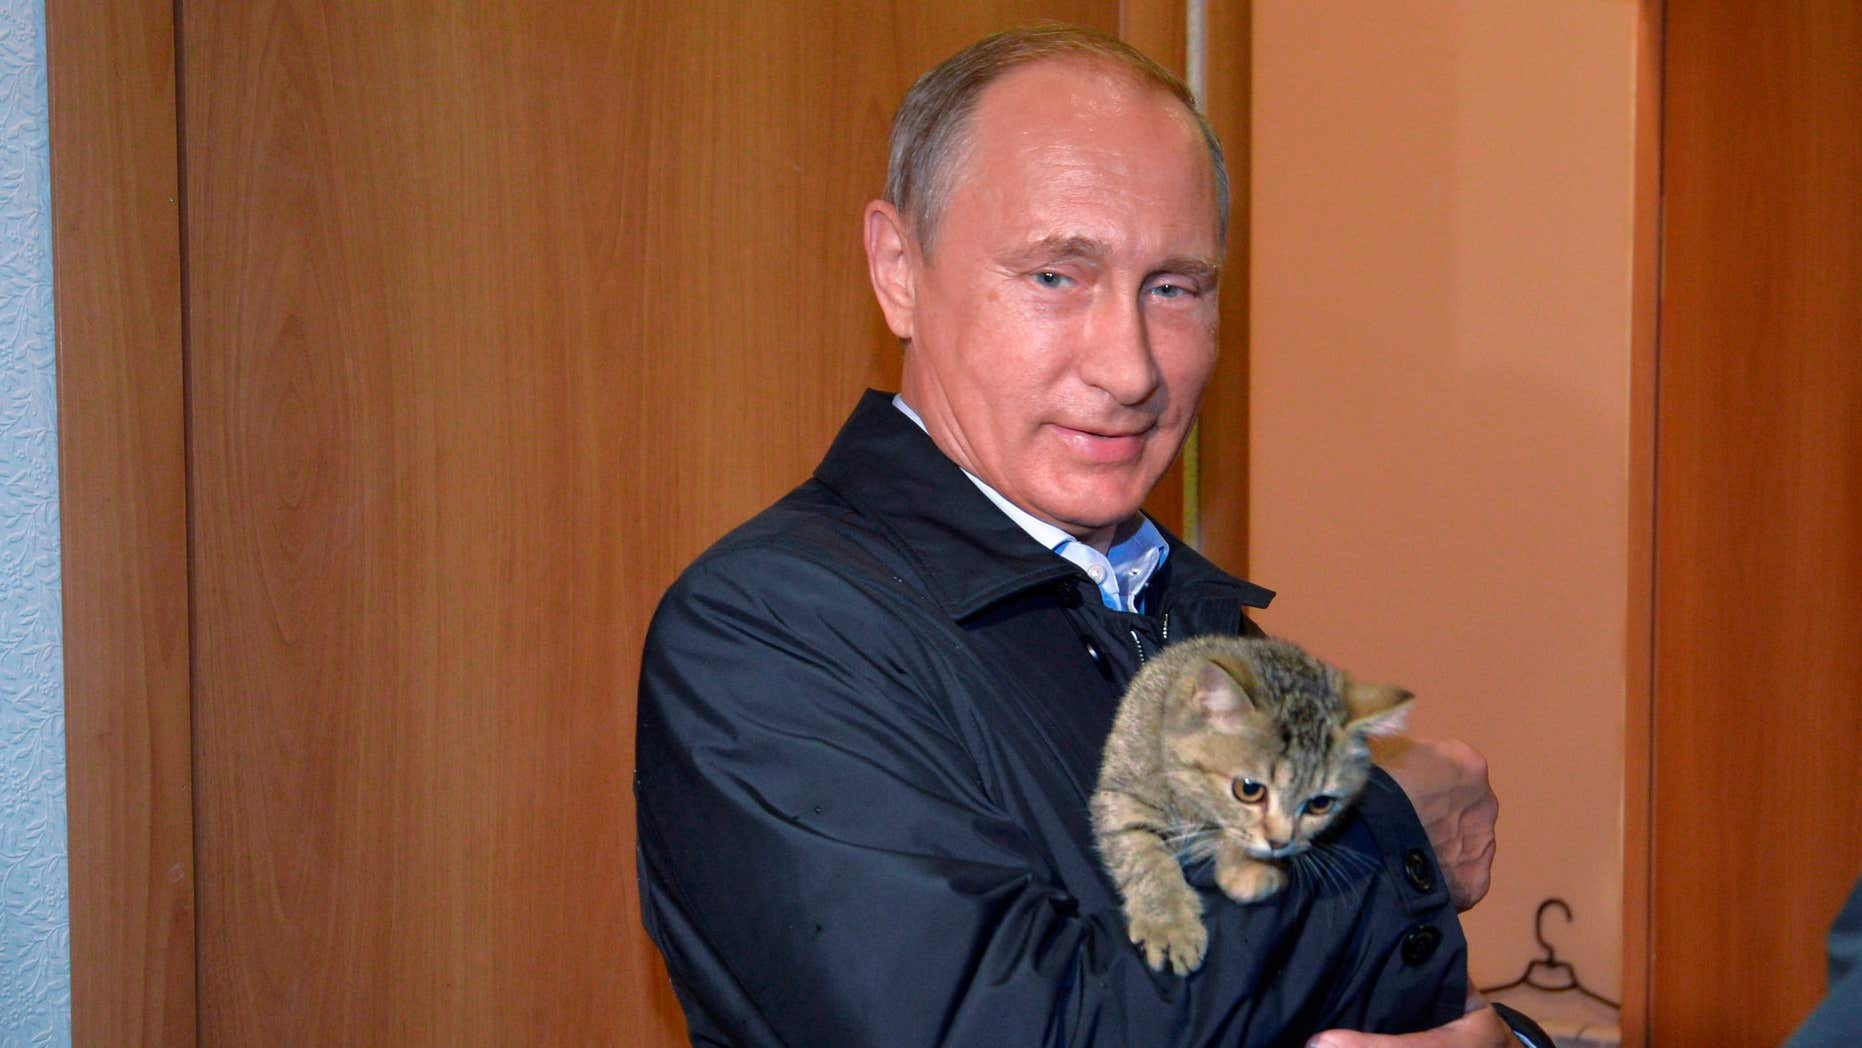 Sept. 4, 2015: Russian President Vladimir Putin holds a cat as he inspects housing built for victims of wildfires in the village of Krasnopolye, in Khakassia, a region in southeastern Siberia, Russia.